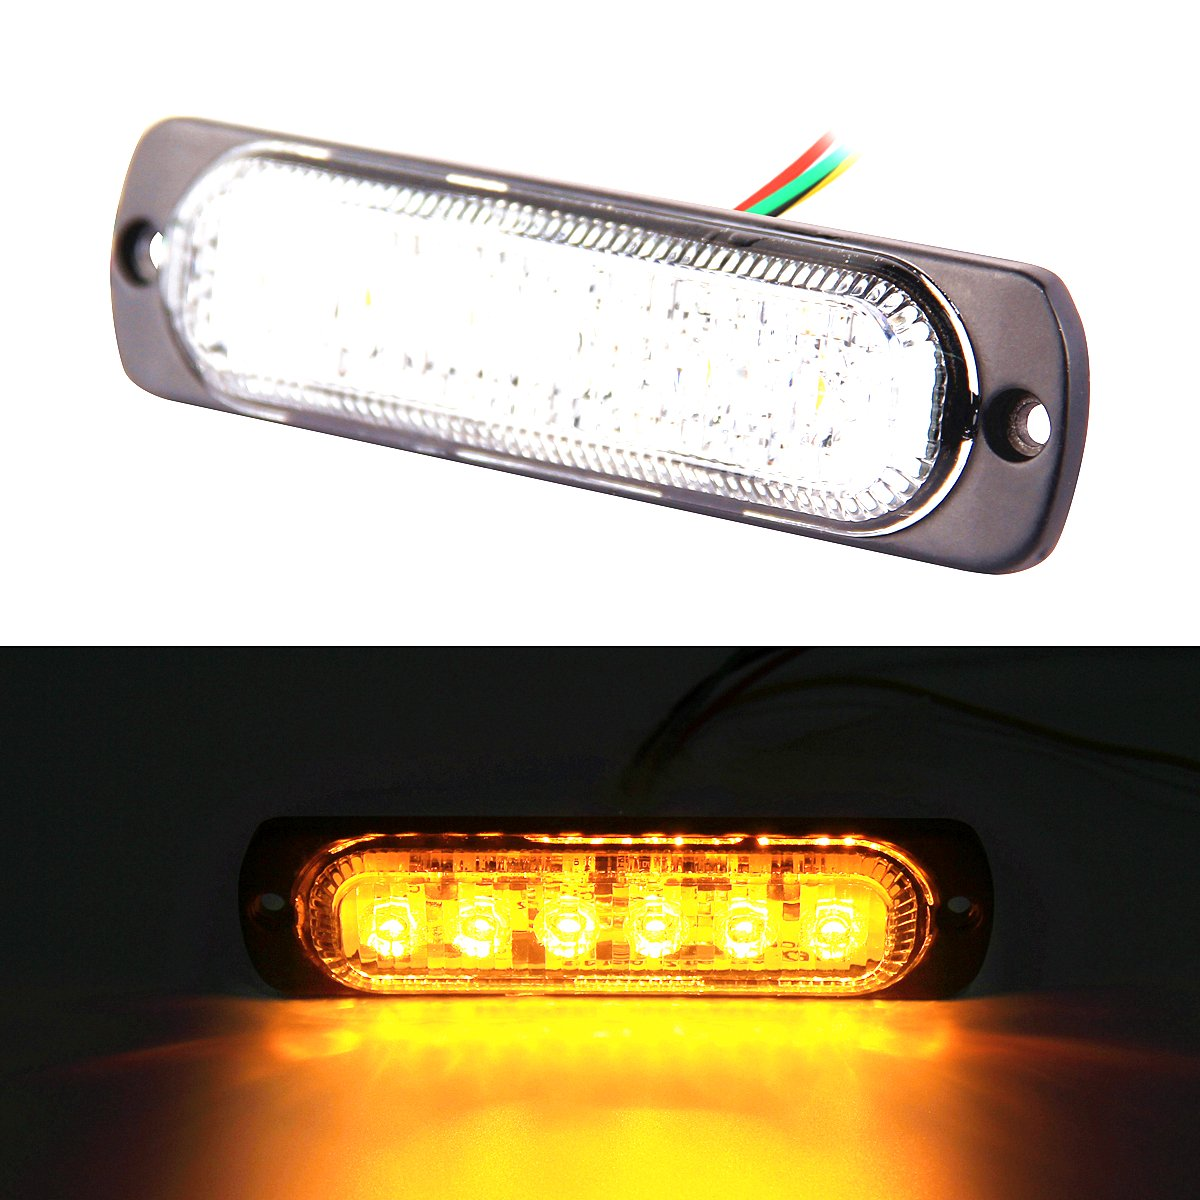 3W premium super thin 6 led amber emergency strobe light for vehicles FOXSTAR 4333226561